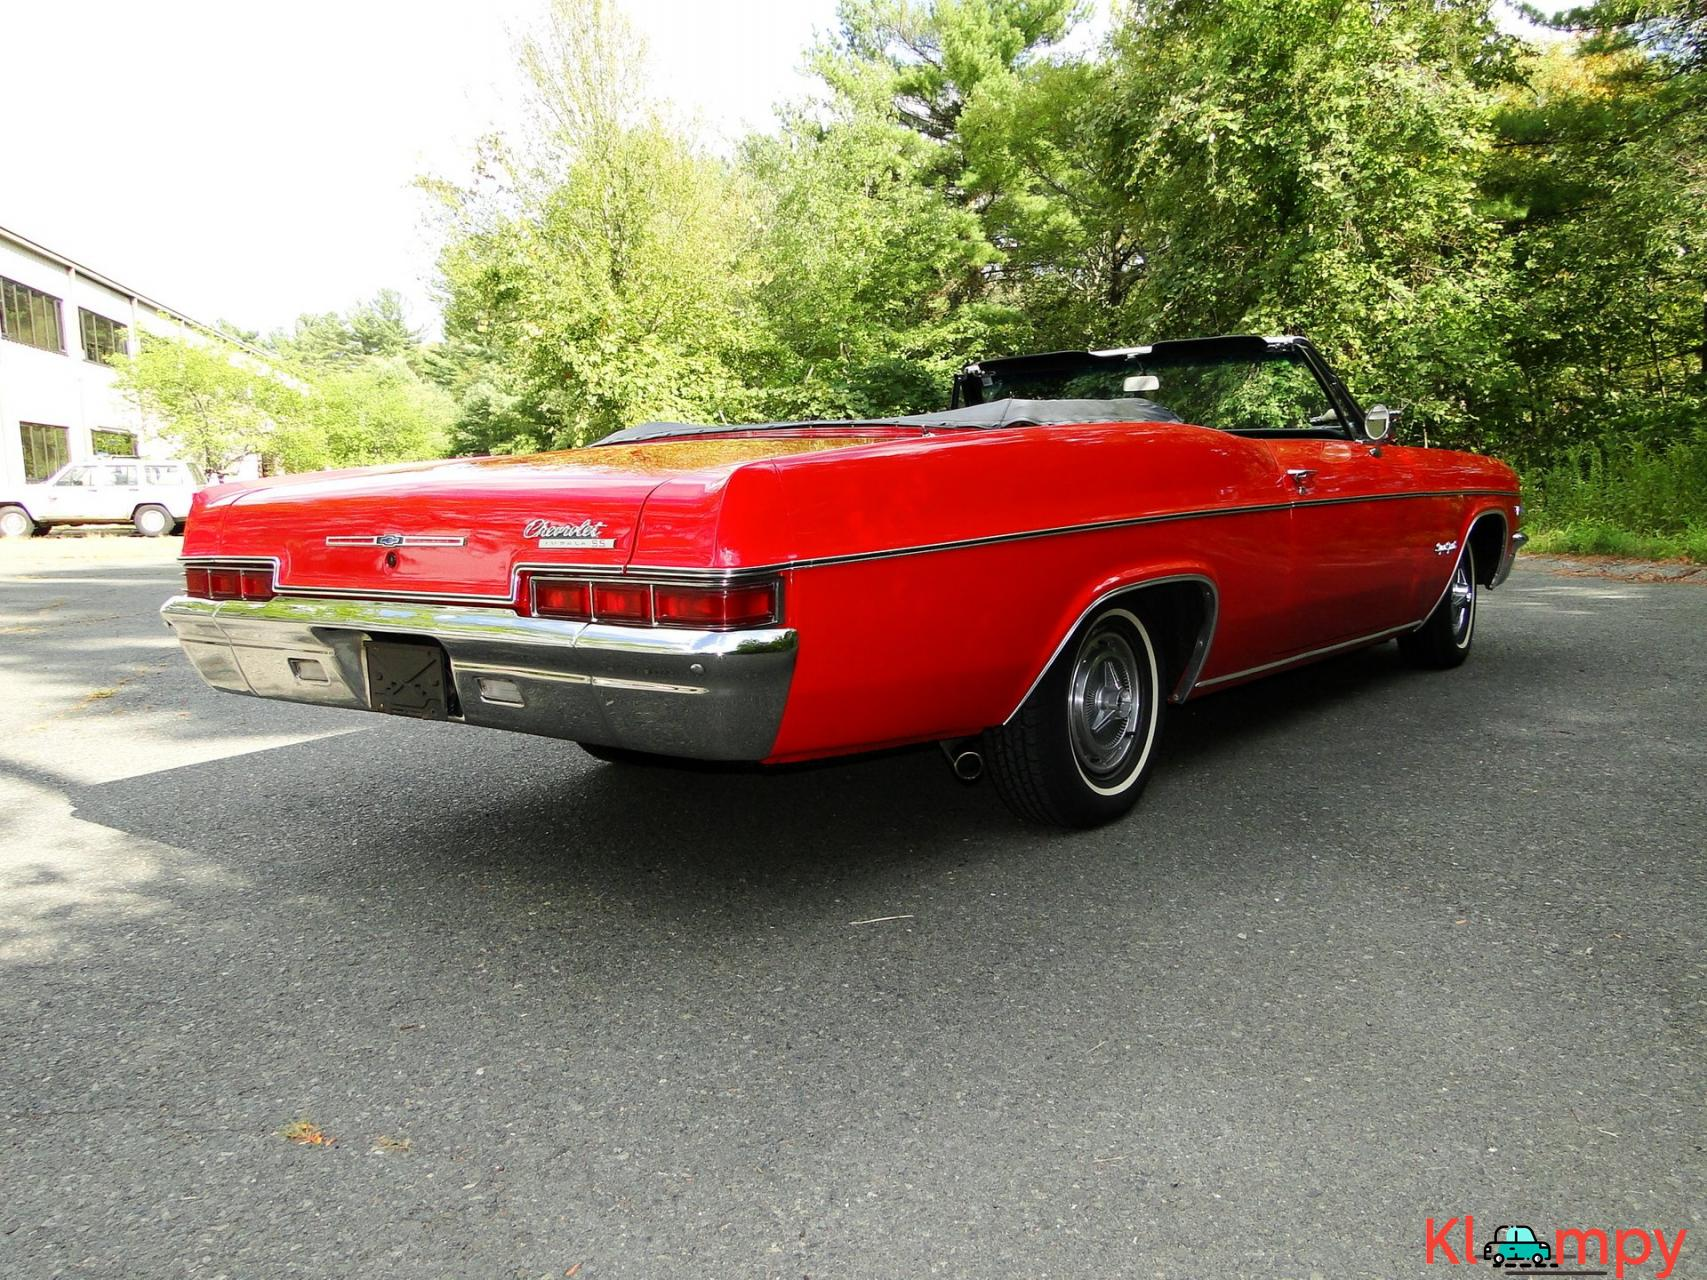 1966 Chevrolet Impala SS Convertible Regal Red V8 - 6/23